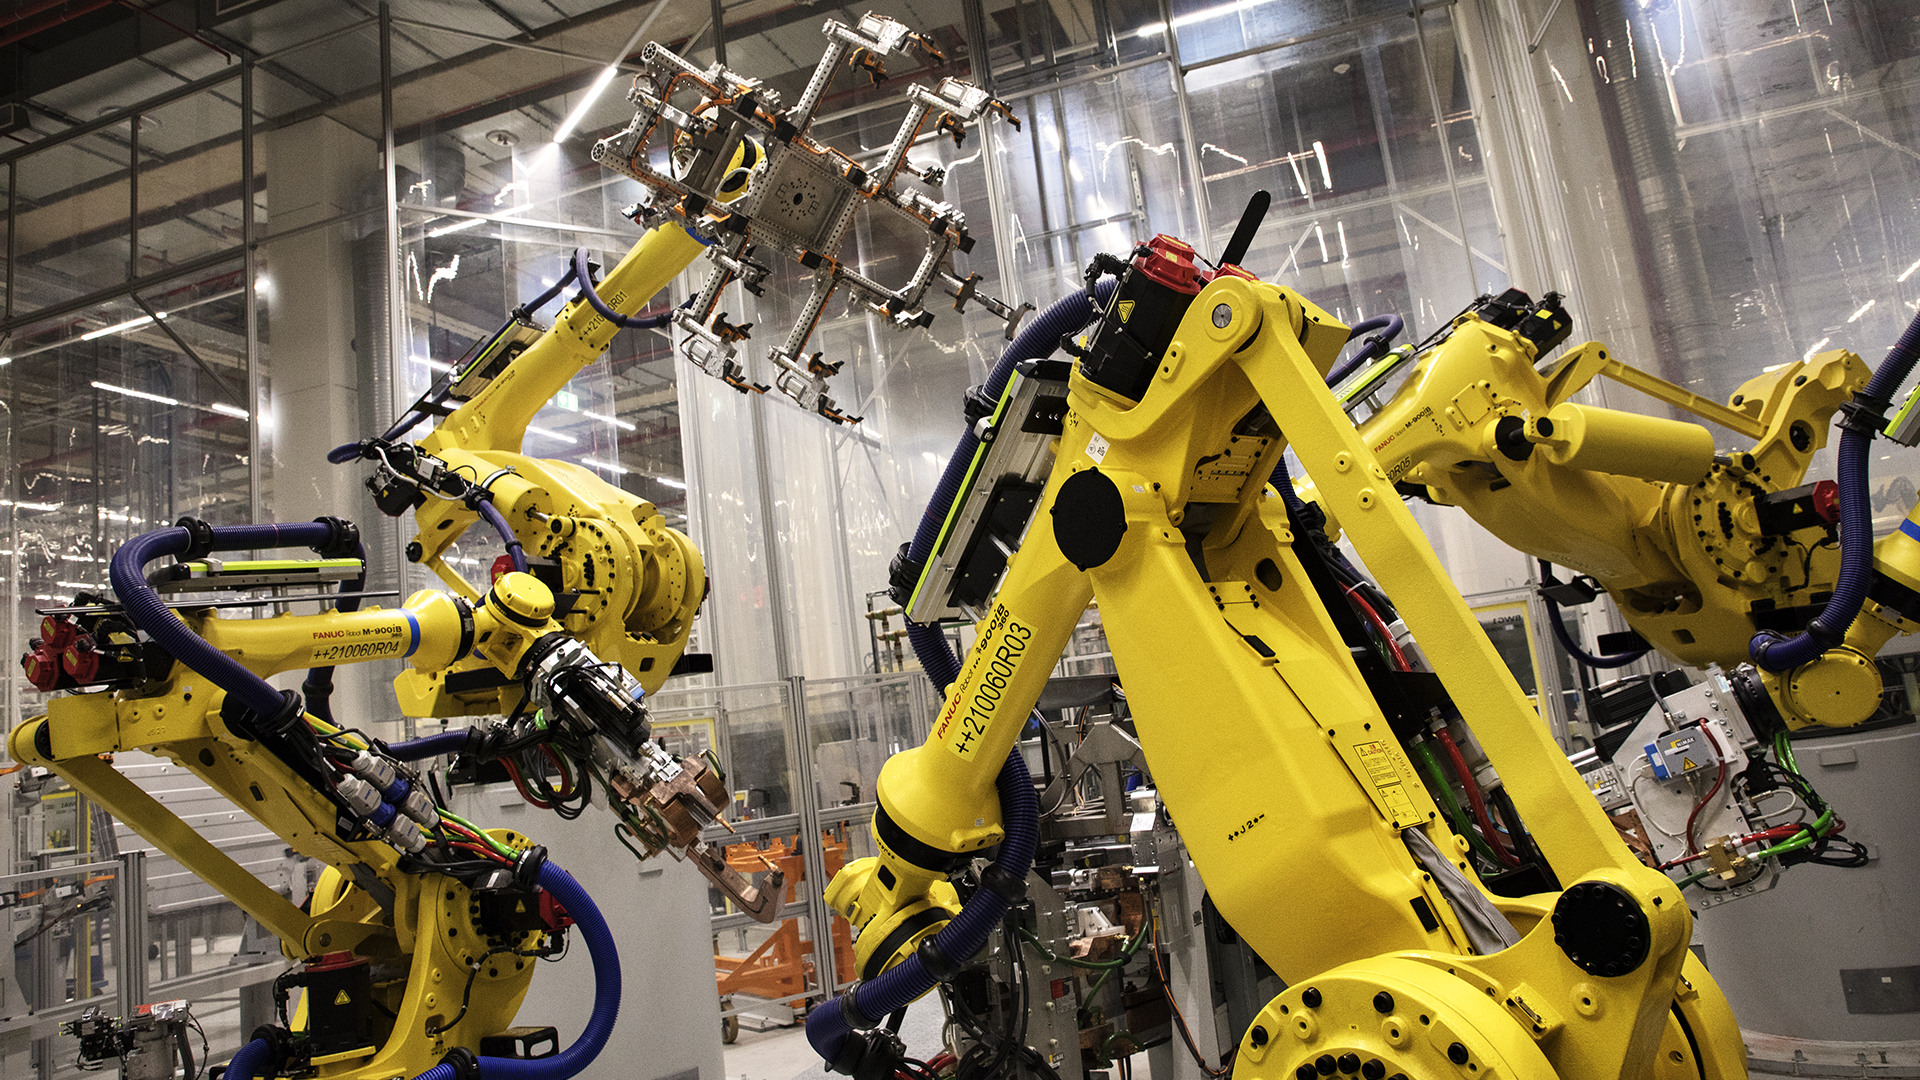 The robots in the body shop are so majestic and methodical in their movements that they evoke dinosaurs.